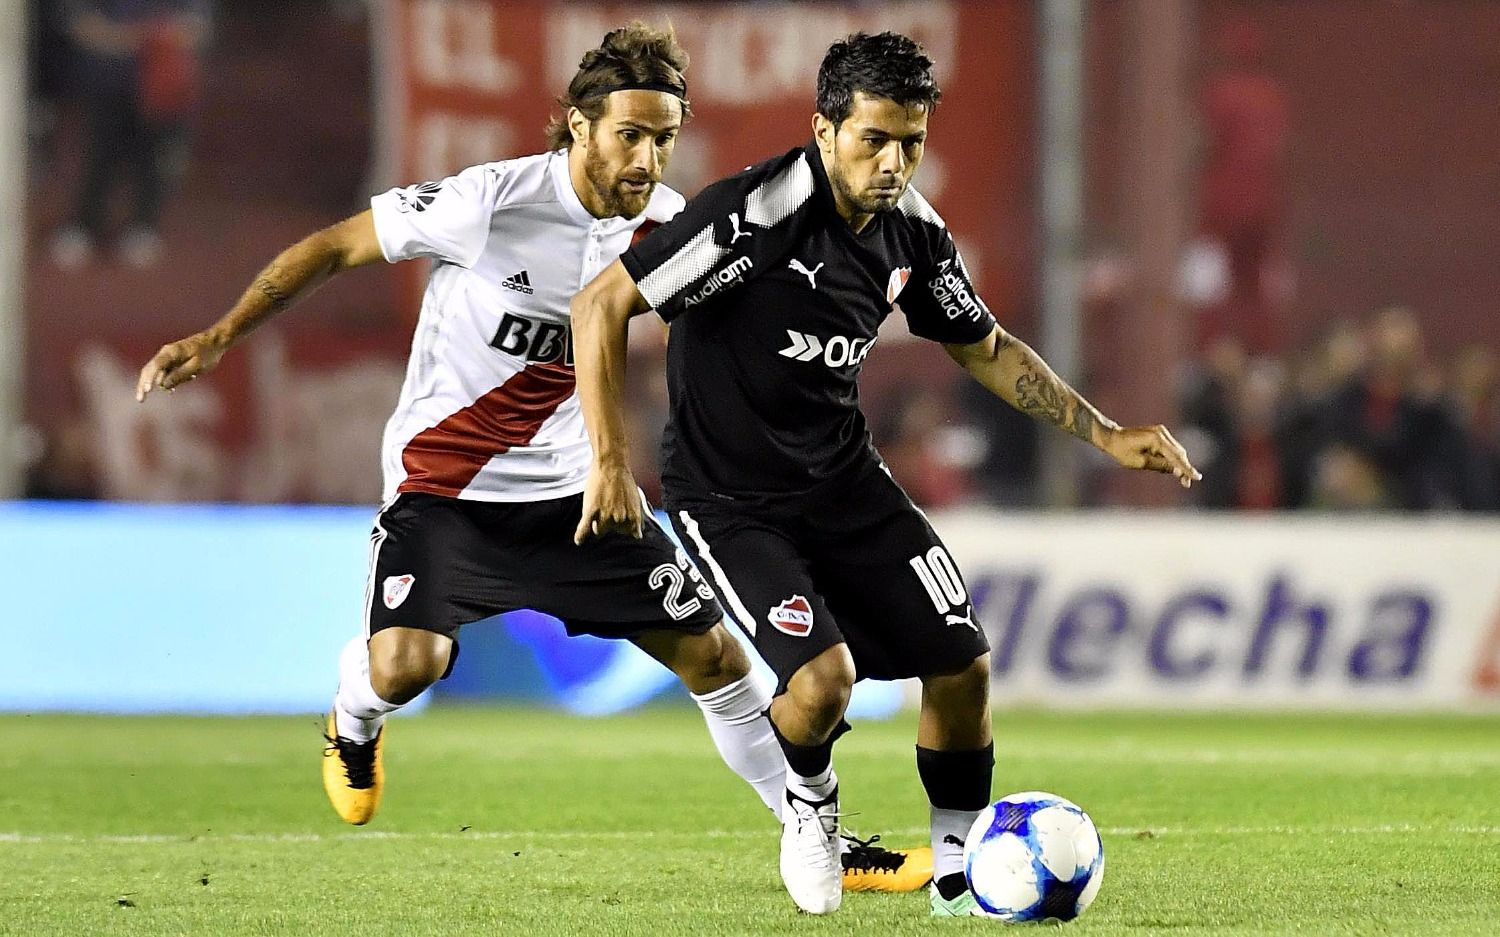 Independiente y River empatan en Avellaneda